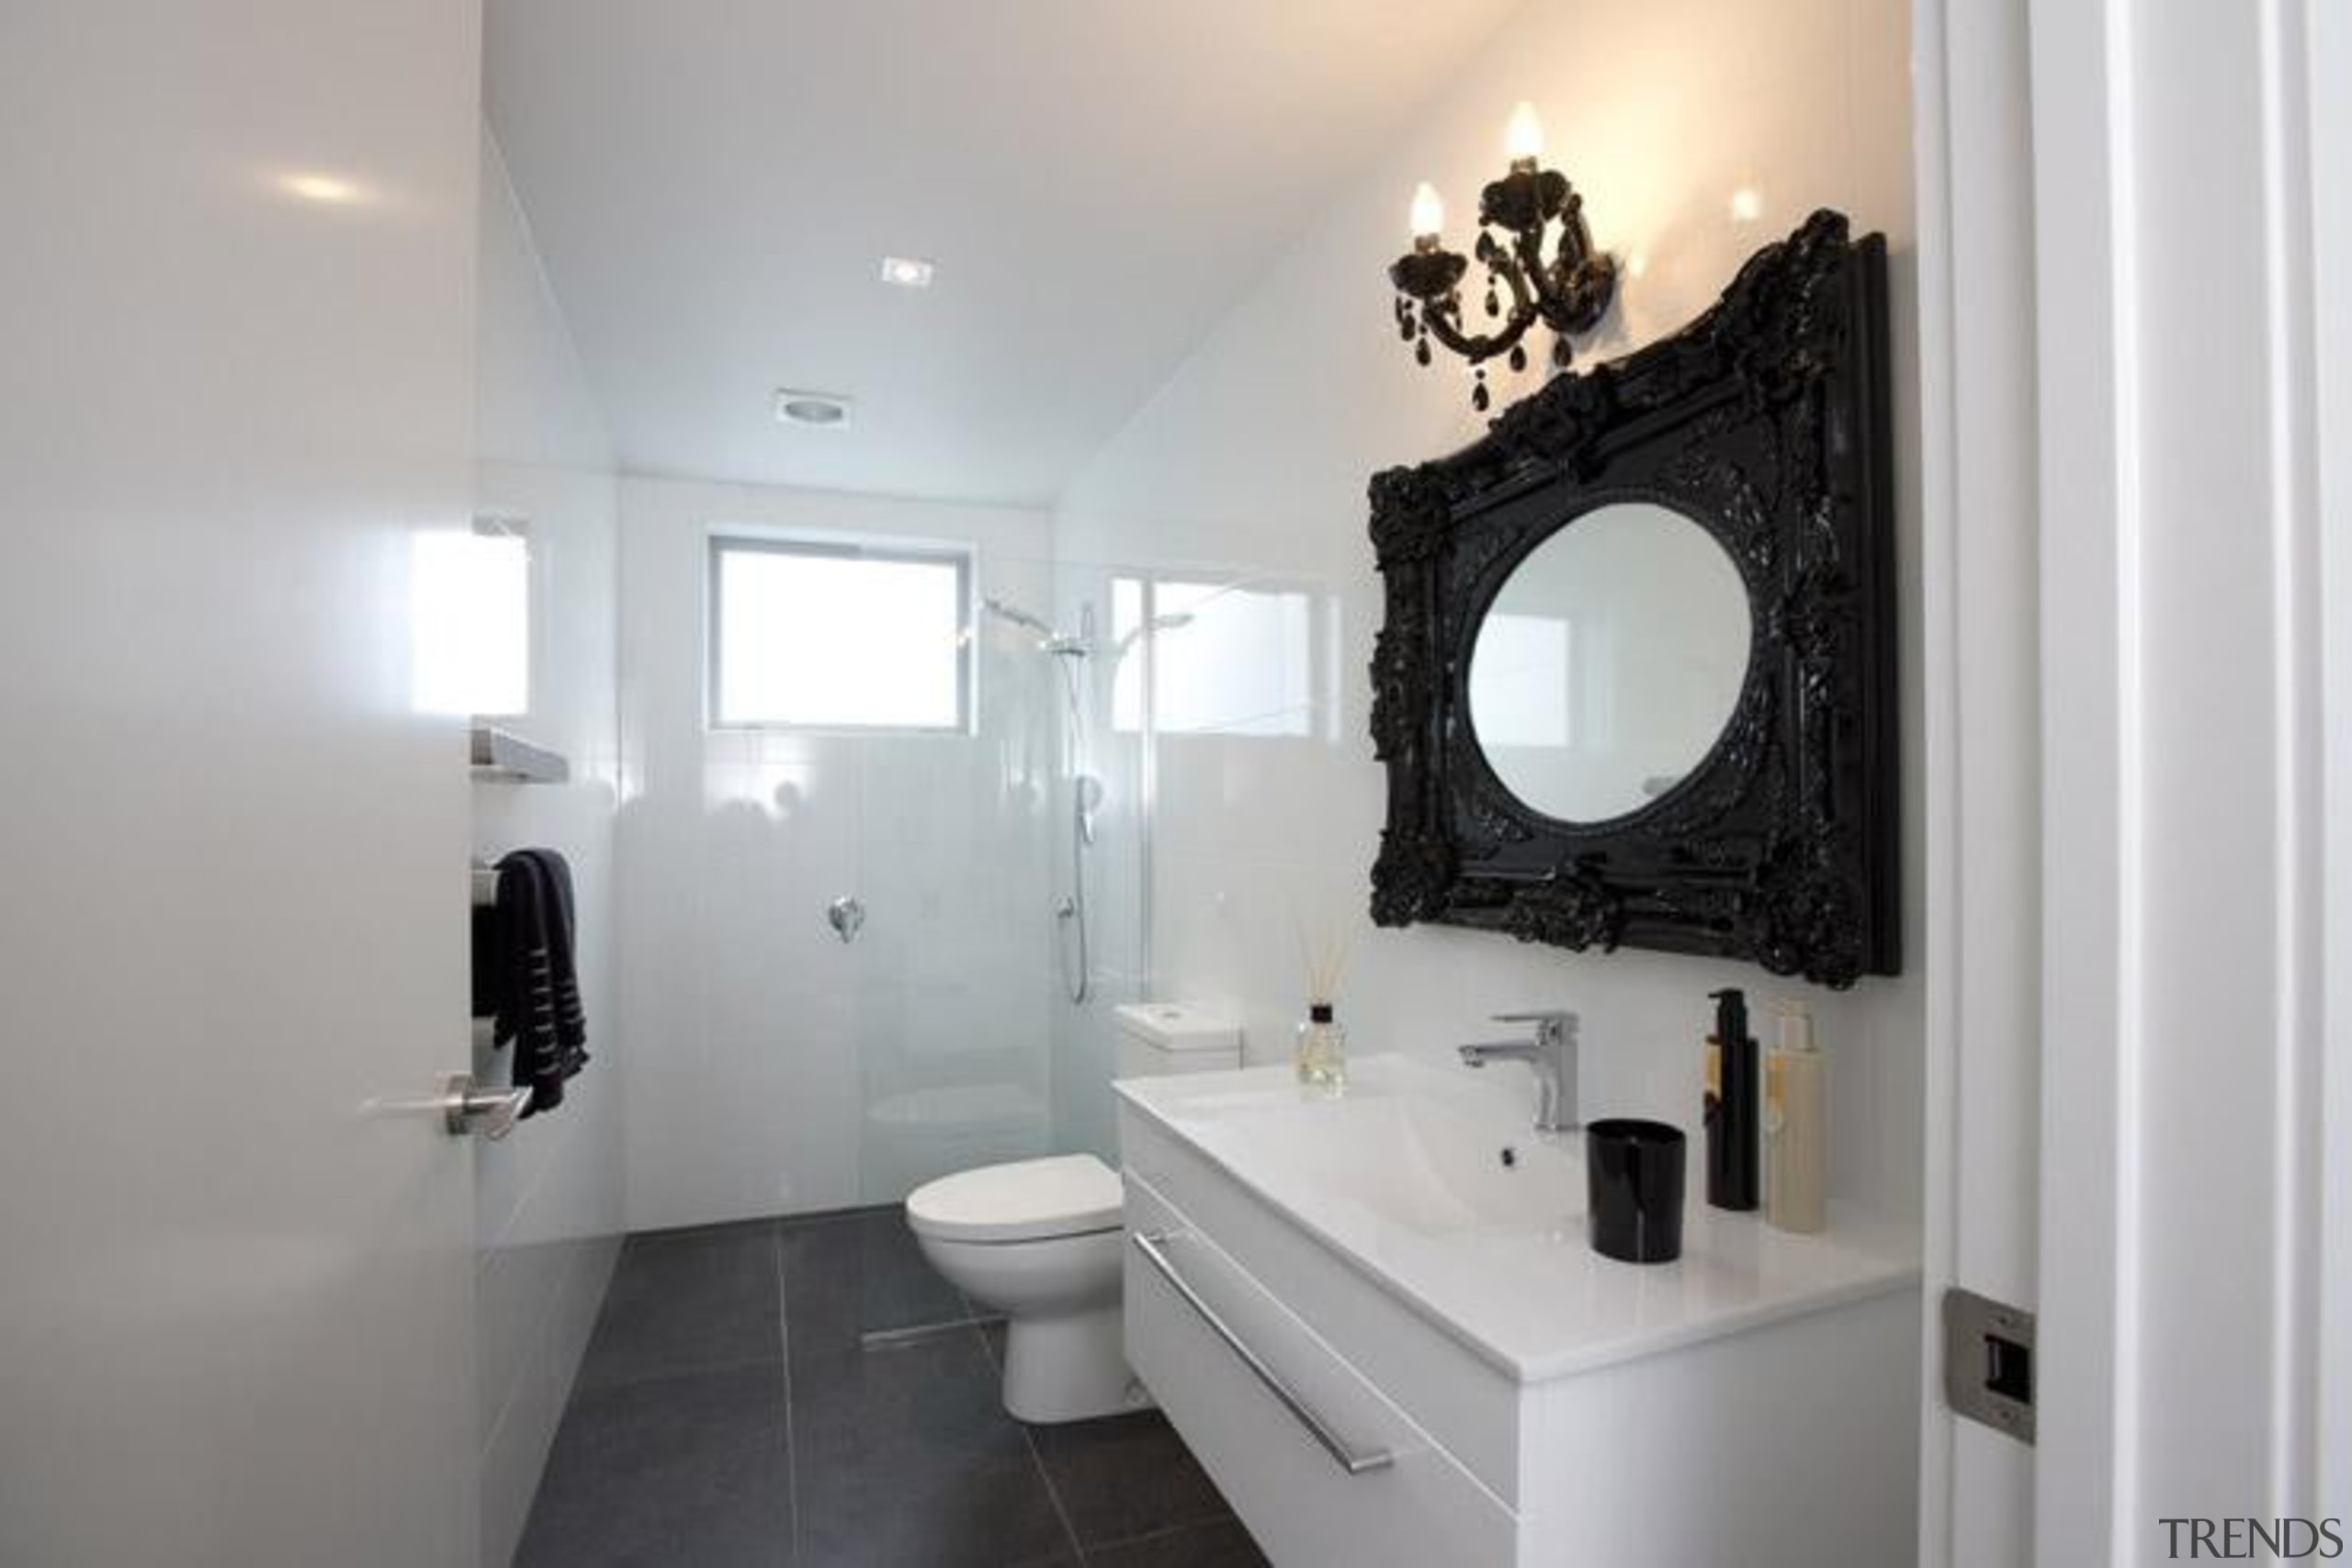 Anthracite bathroom floor and Easy White Gloss wall. bathroom, bathroom accessory, home, interior design, plumbing fixture, property, room, sink, gray